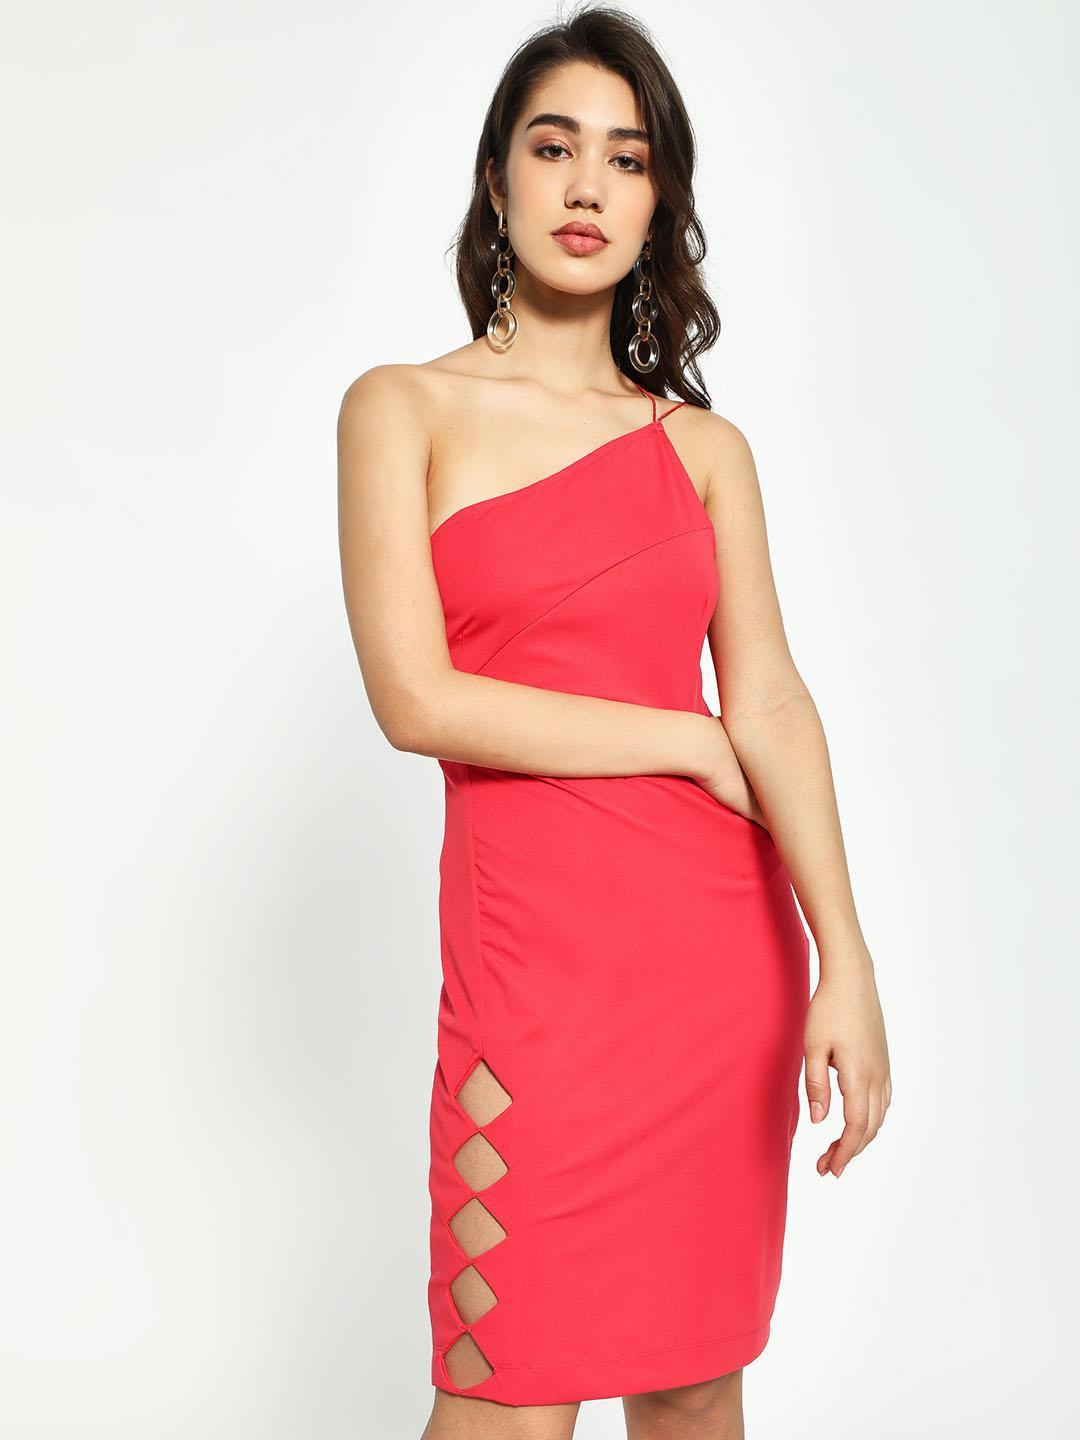 KOOVS Pink One Shoulder Bodycon Dress 1